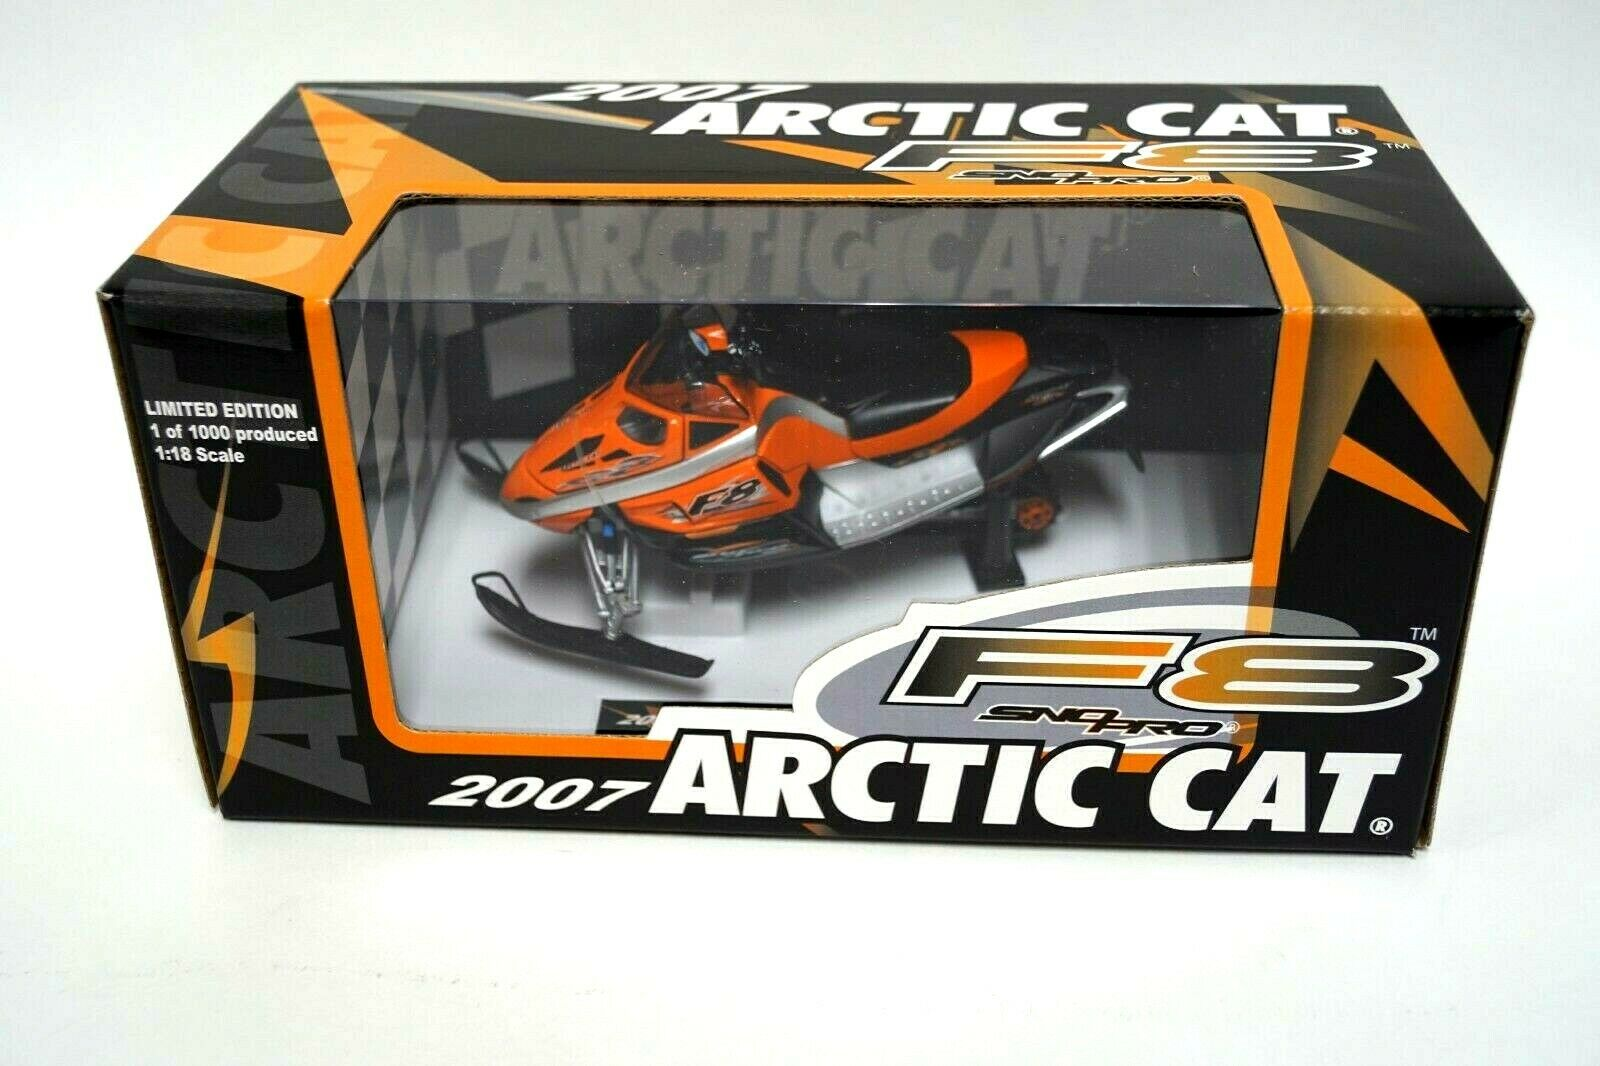 2007 Arctic Cat F8 SP Snowmobile DIE CAST 1 18 Scale Model Toy 4279-160